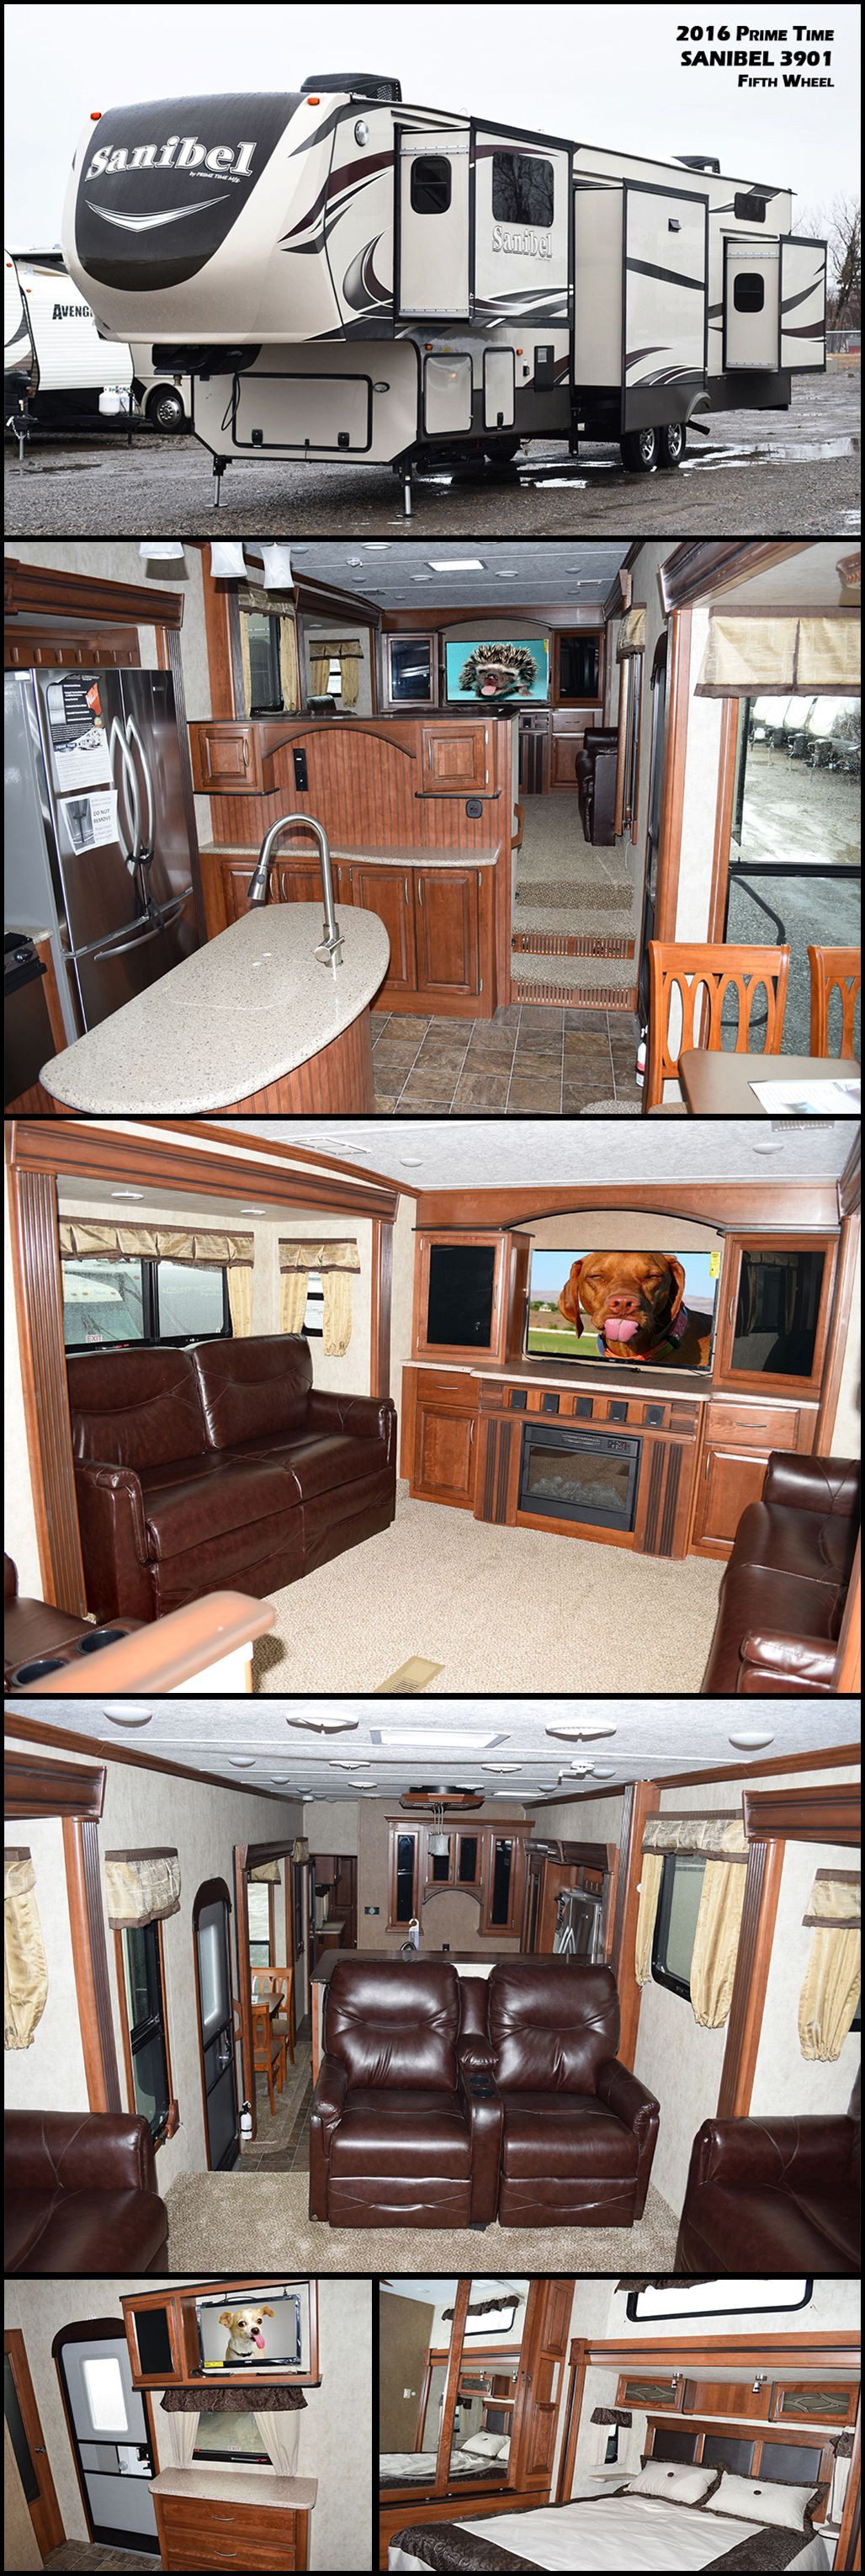 2016 prime time sanibel swt1378 fifth wheel rv - 2016 luxury front living room 5th wheel ...